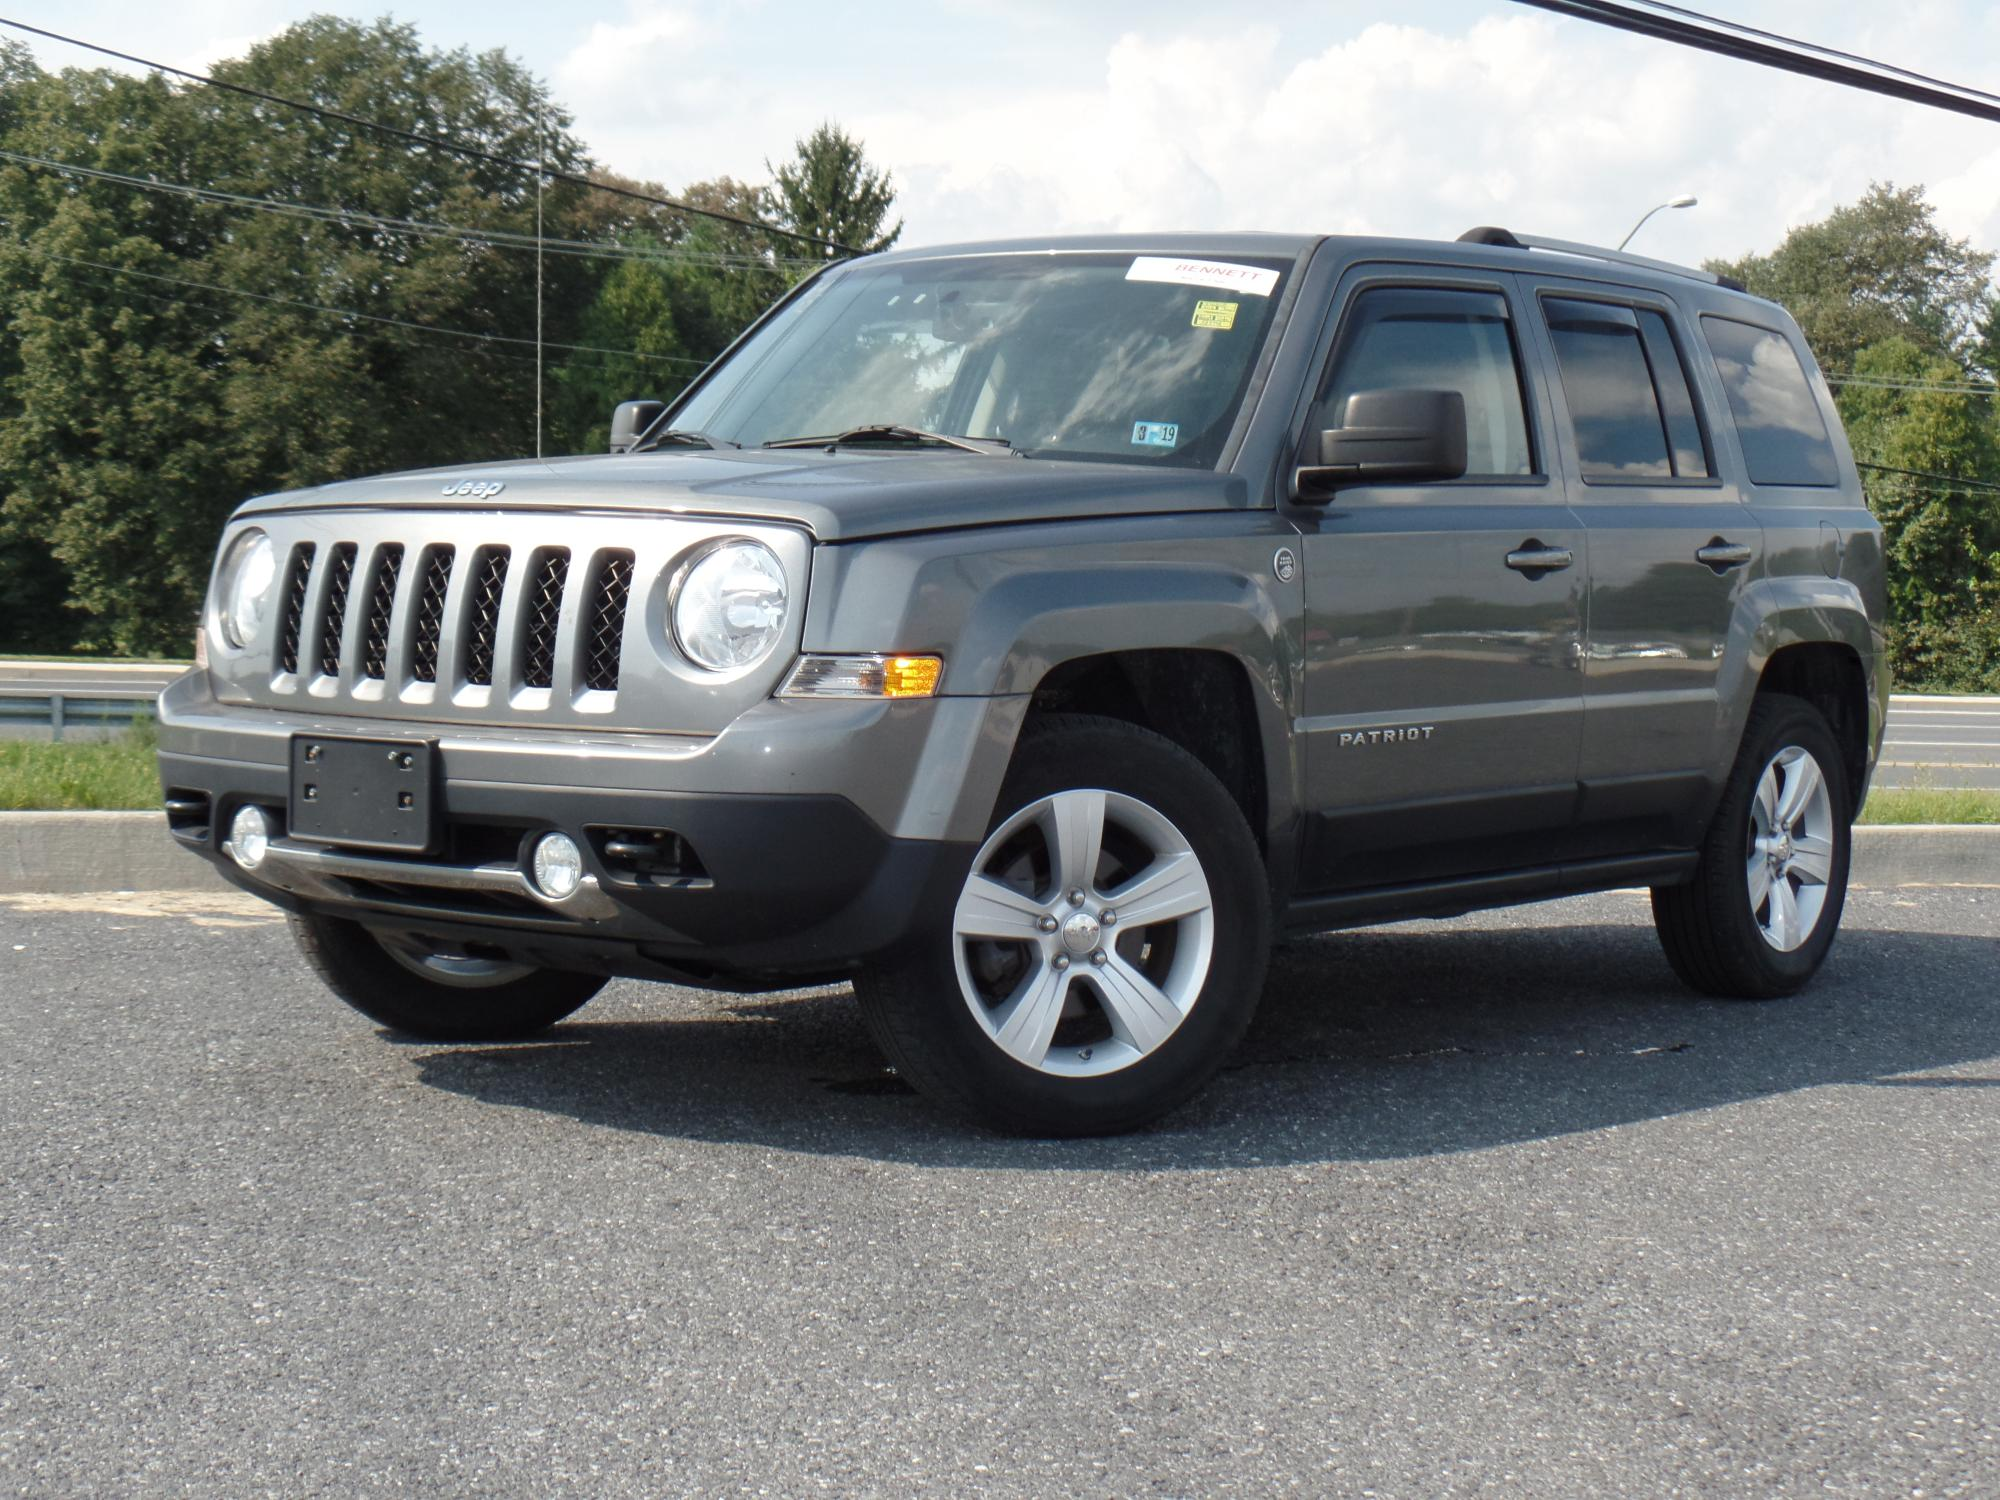 9-6-2018_2012_Jeep_Patriot_563992__1_.JPG